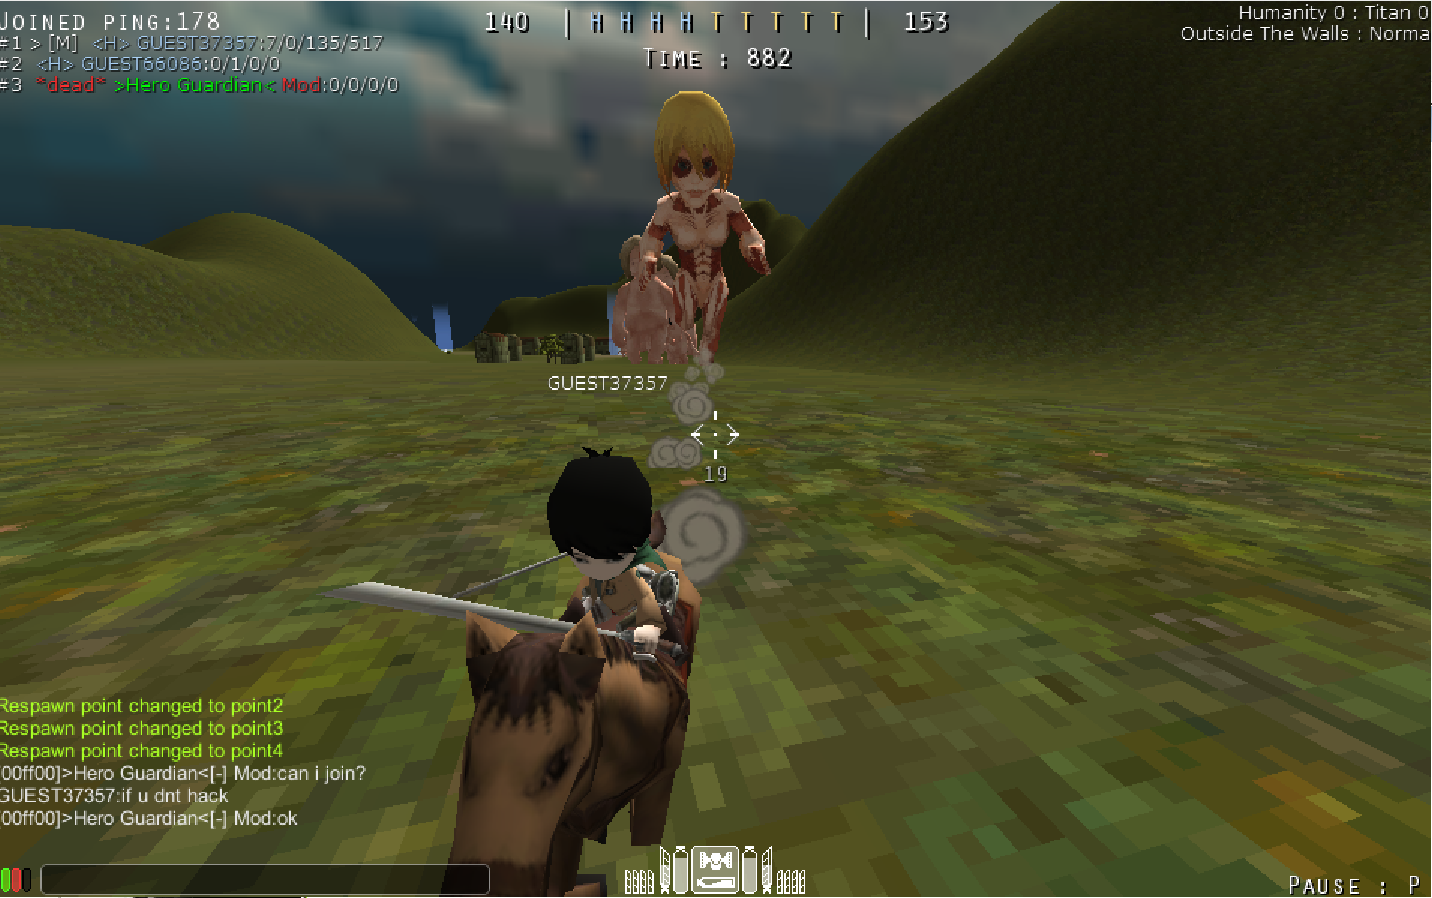 Attack on titan multiplayer pc game tribute + download link.